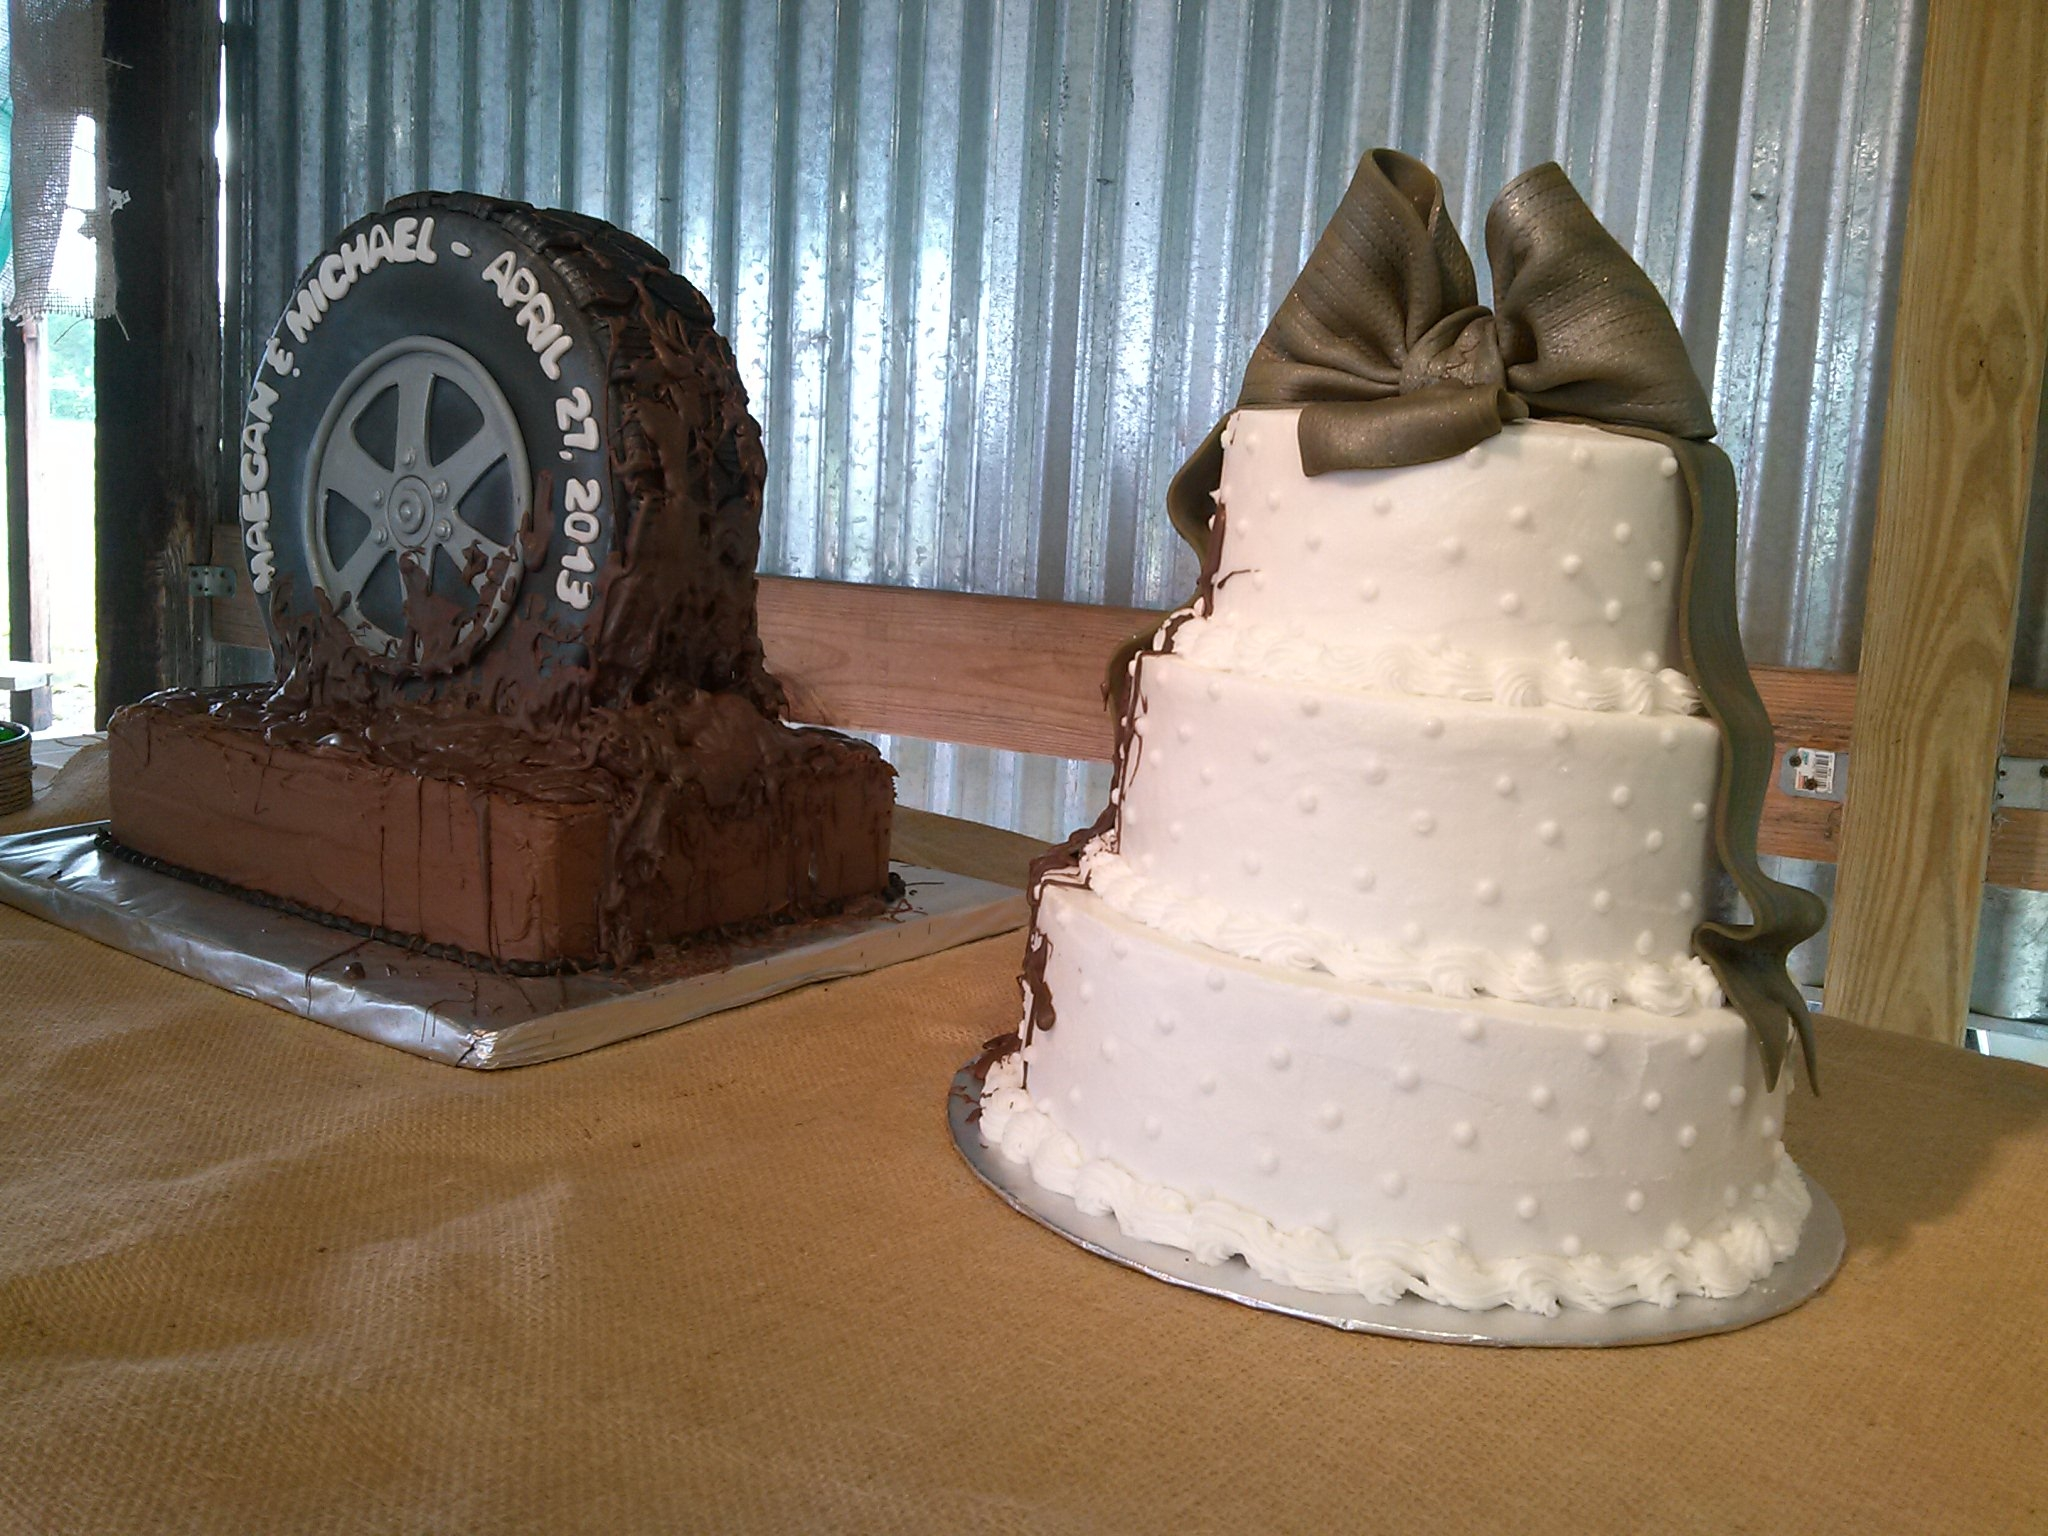 muddy tire country wedding cakes. Black Bedroom Furniture Sets. Home Design Ideas